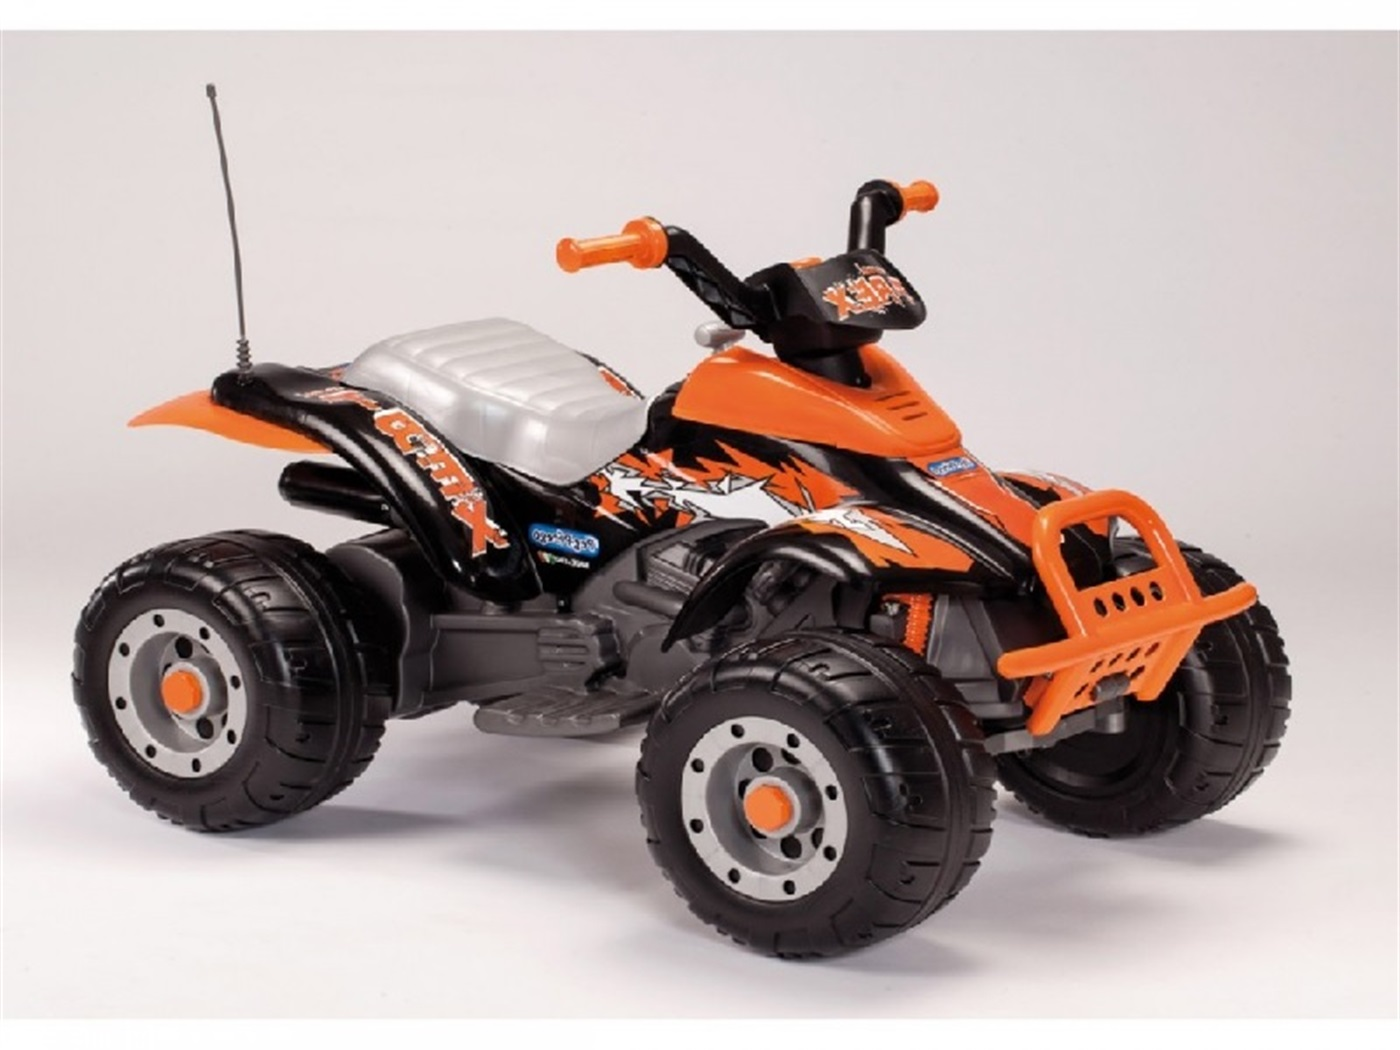 PEG PEREGO Corral T-Rex black/orange